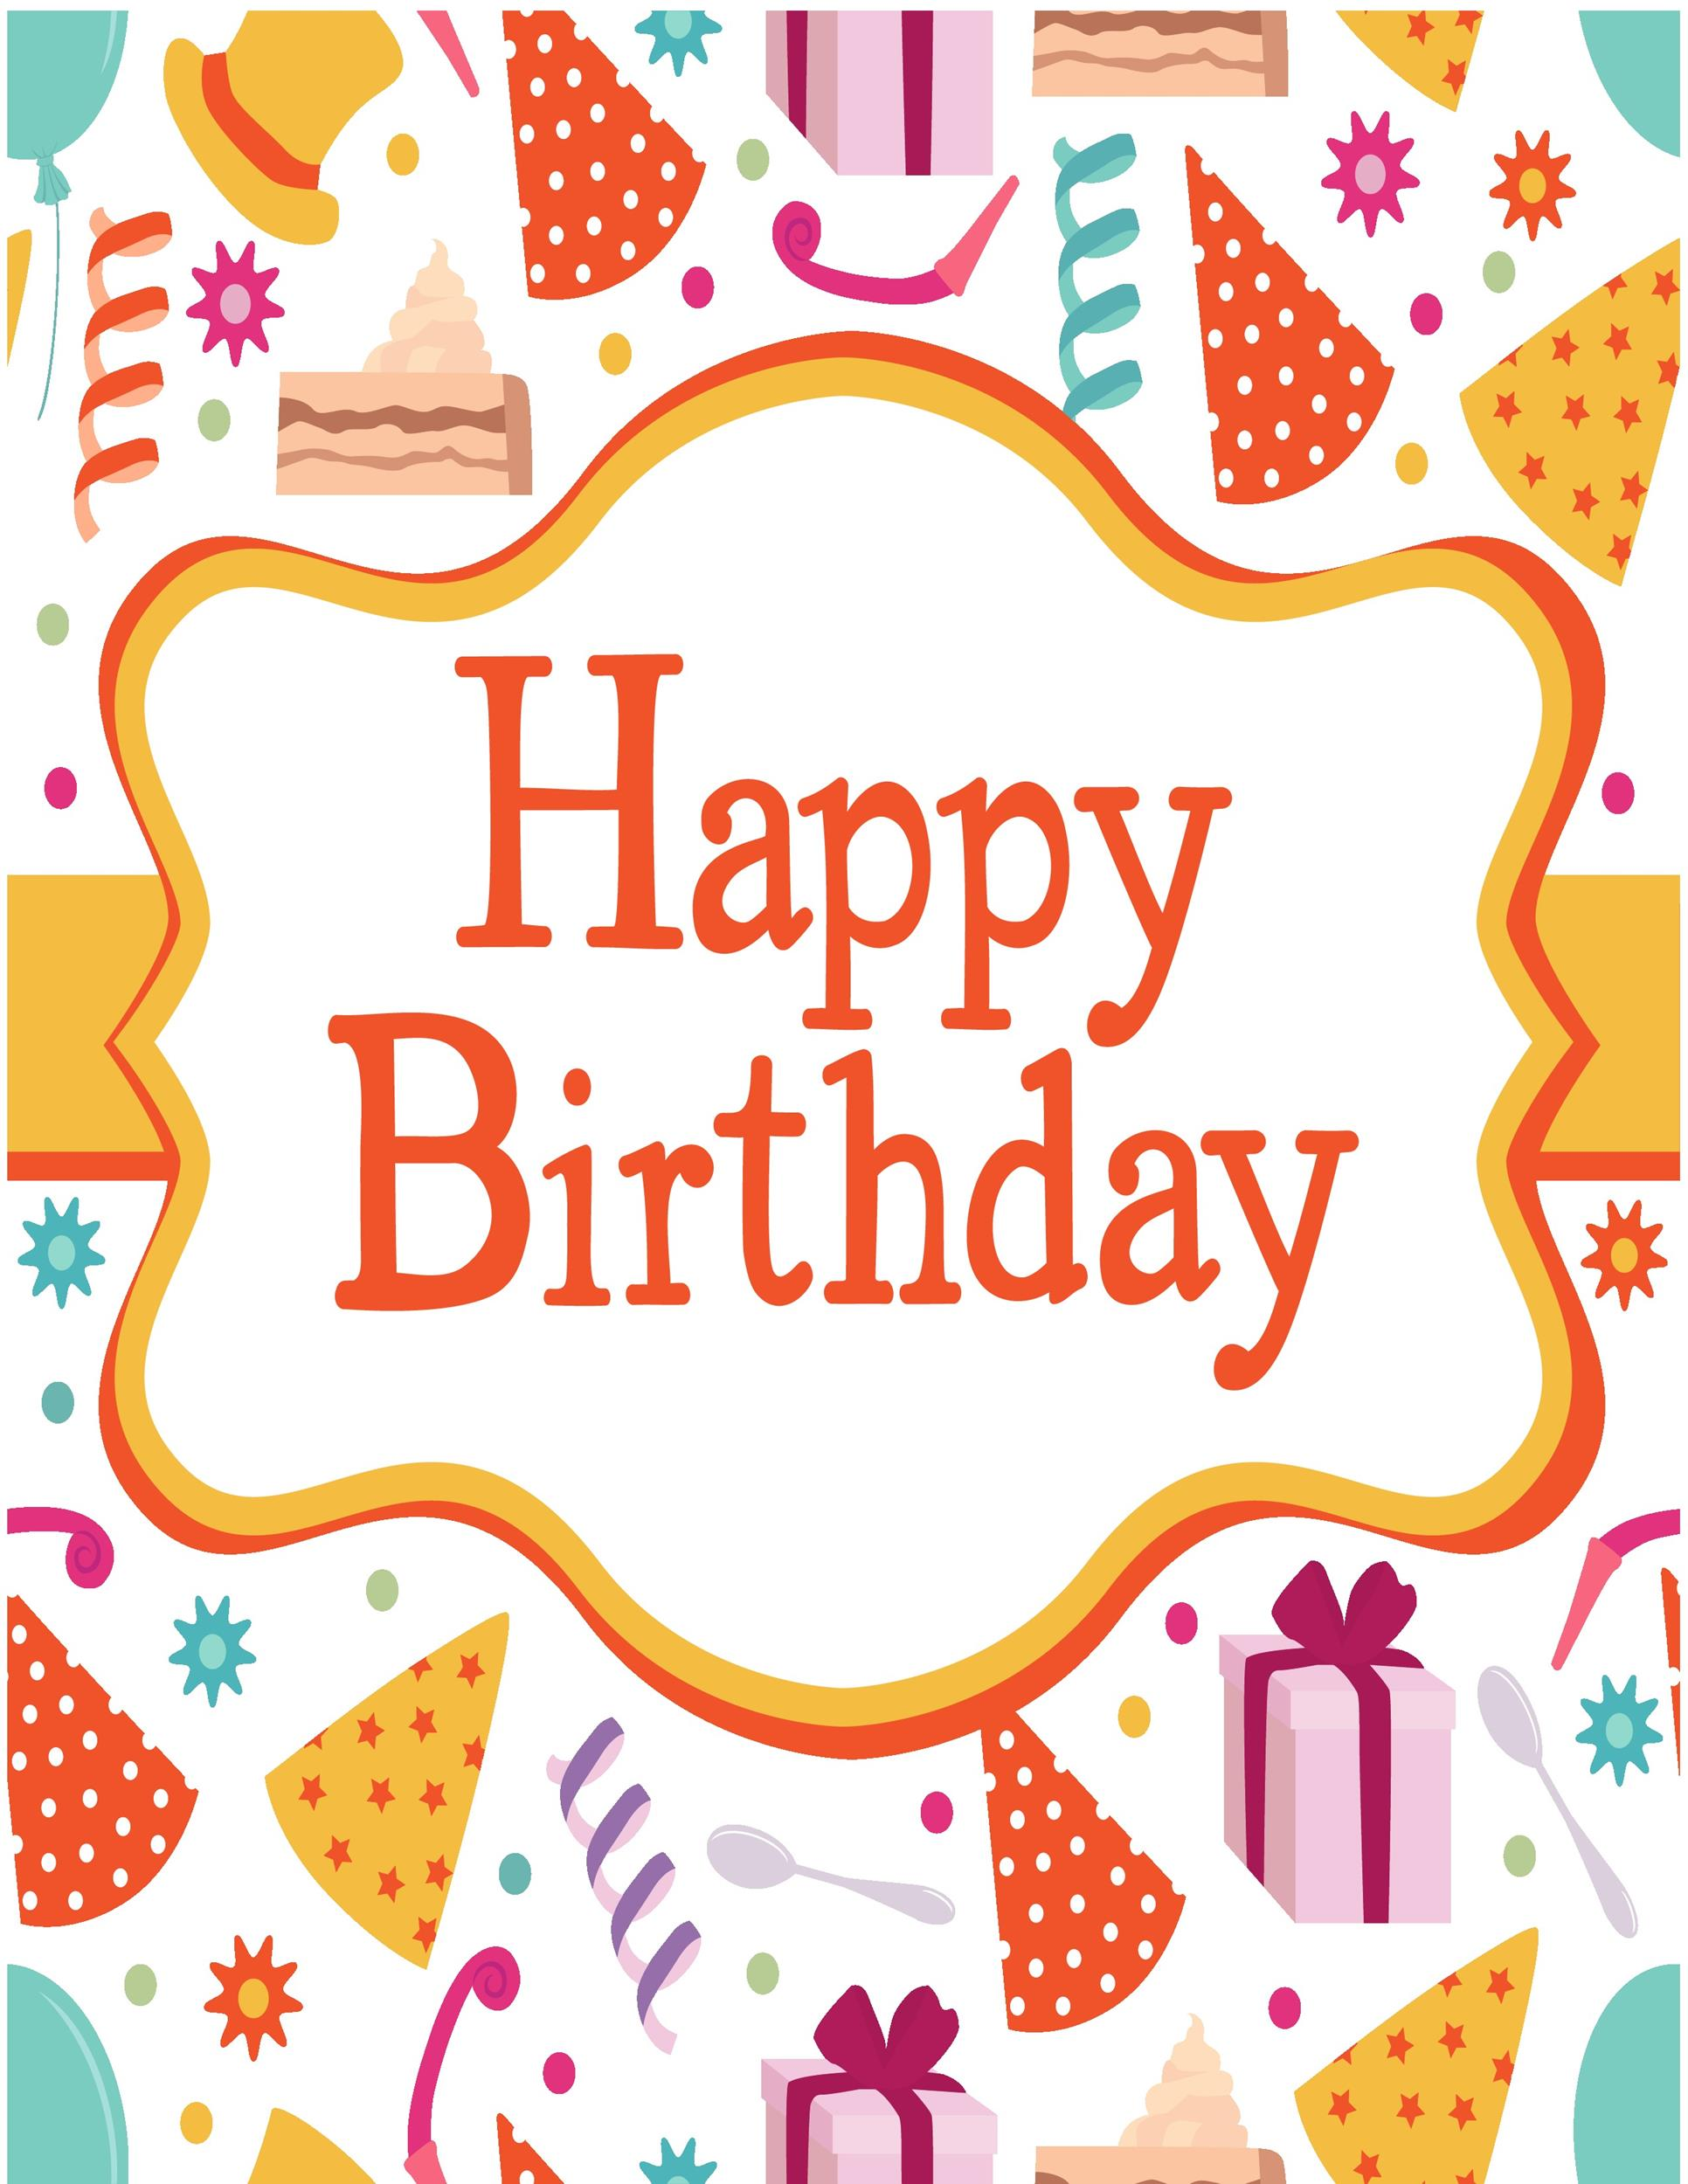 Free birthday card template 25